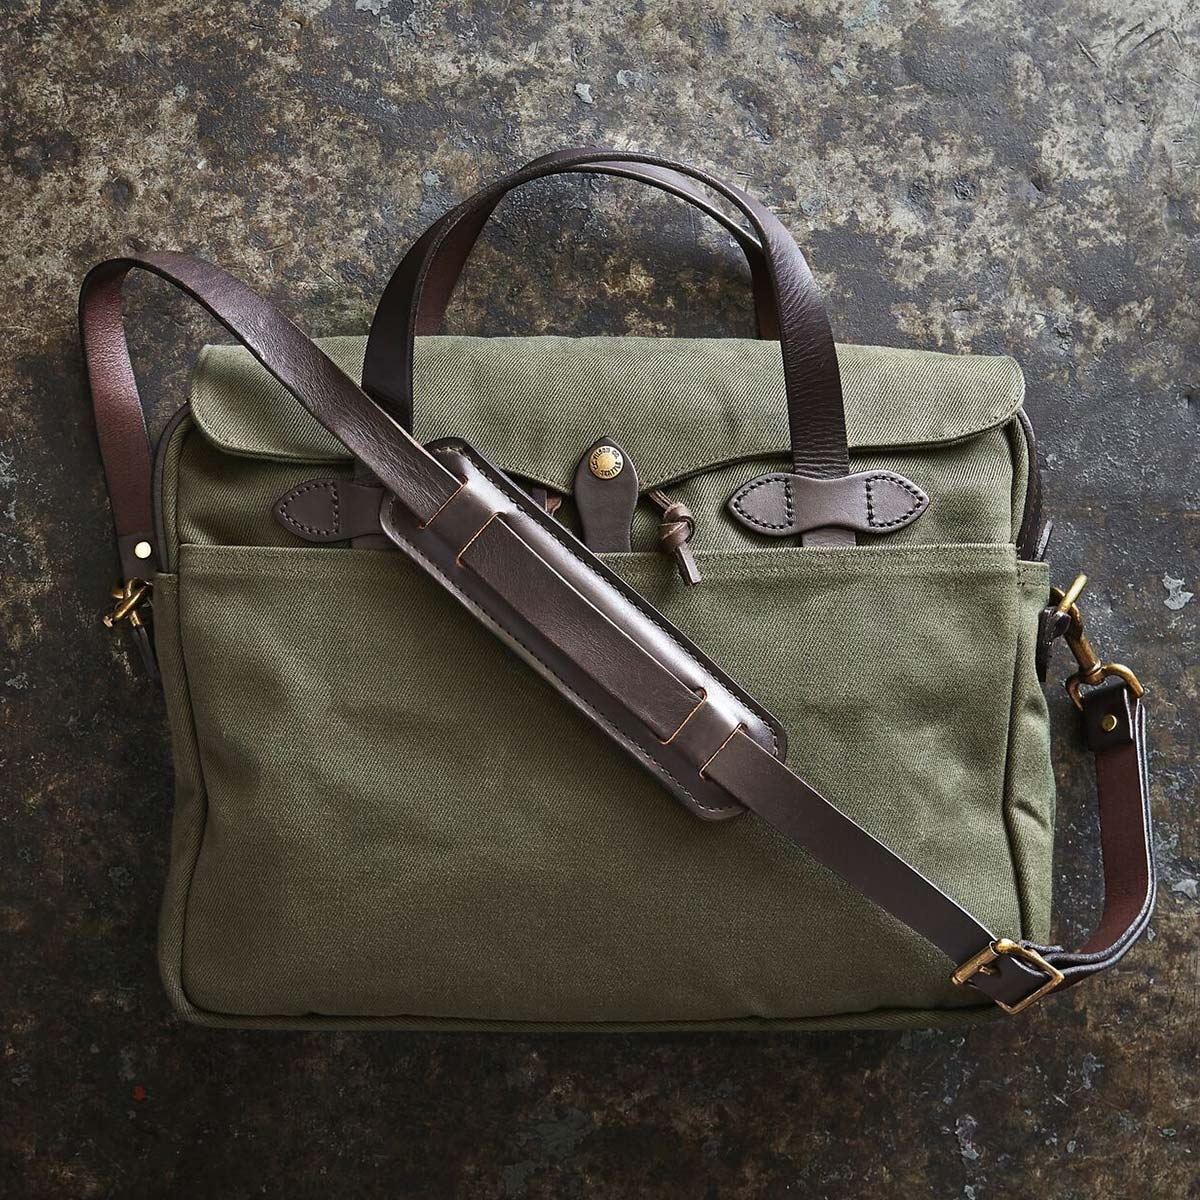 Filson Original Briefcase 11070256 Otter Green extraordinary bag for an ordinary day